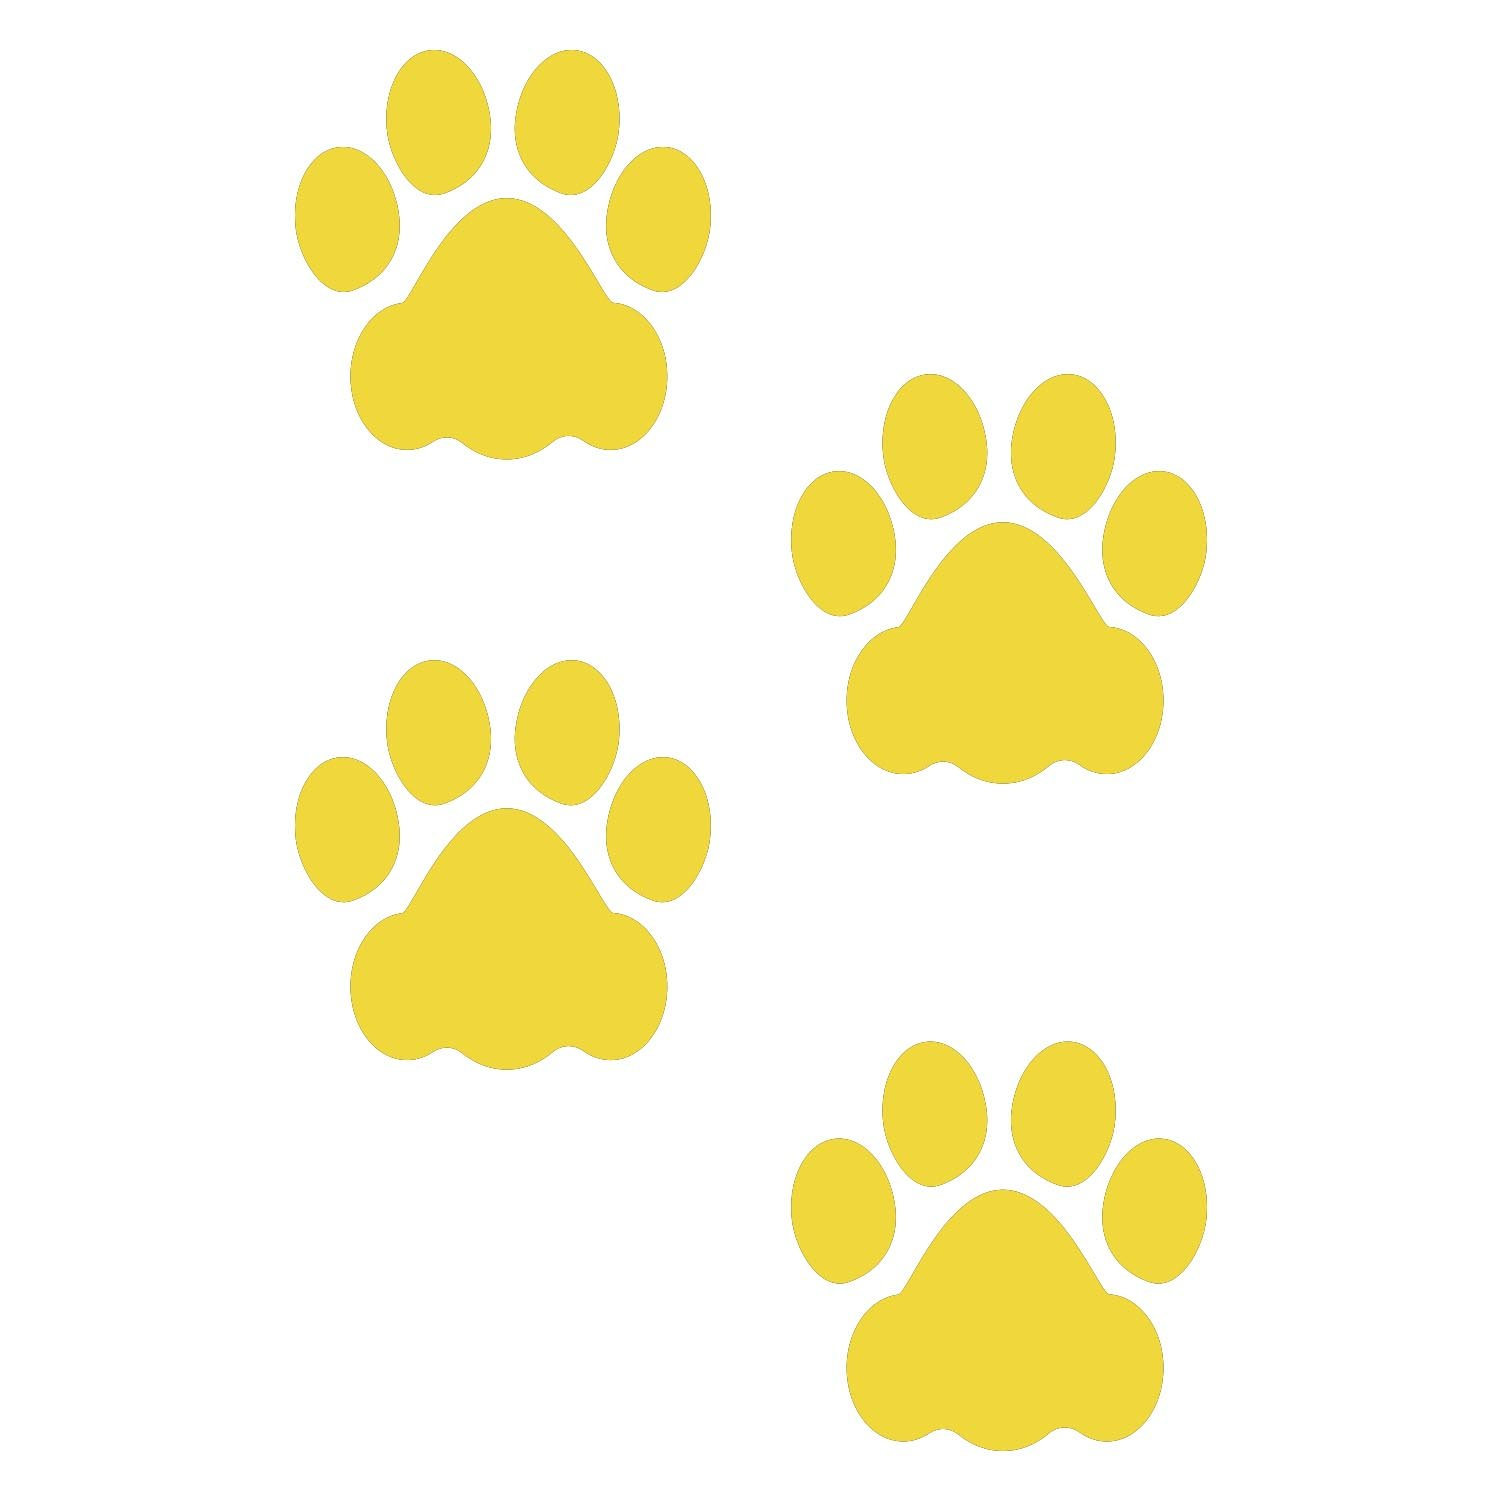 LiteMark 3 Inch Yellow Removable Dog Paw Prints Decal Stickers for Floors and Walls - Pack of 48